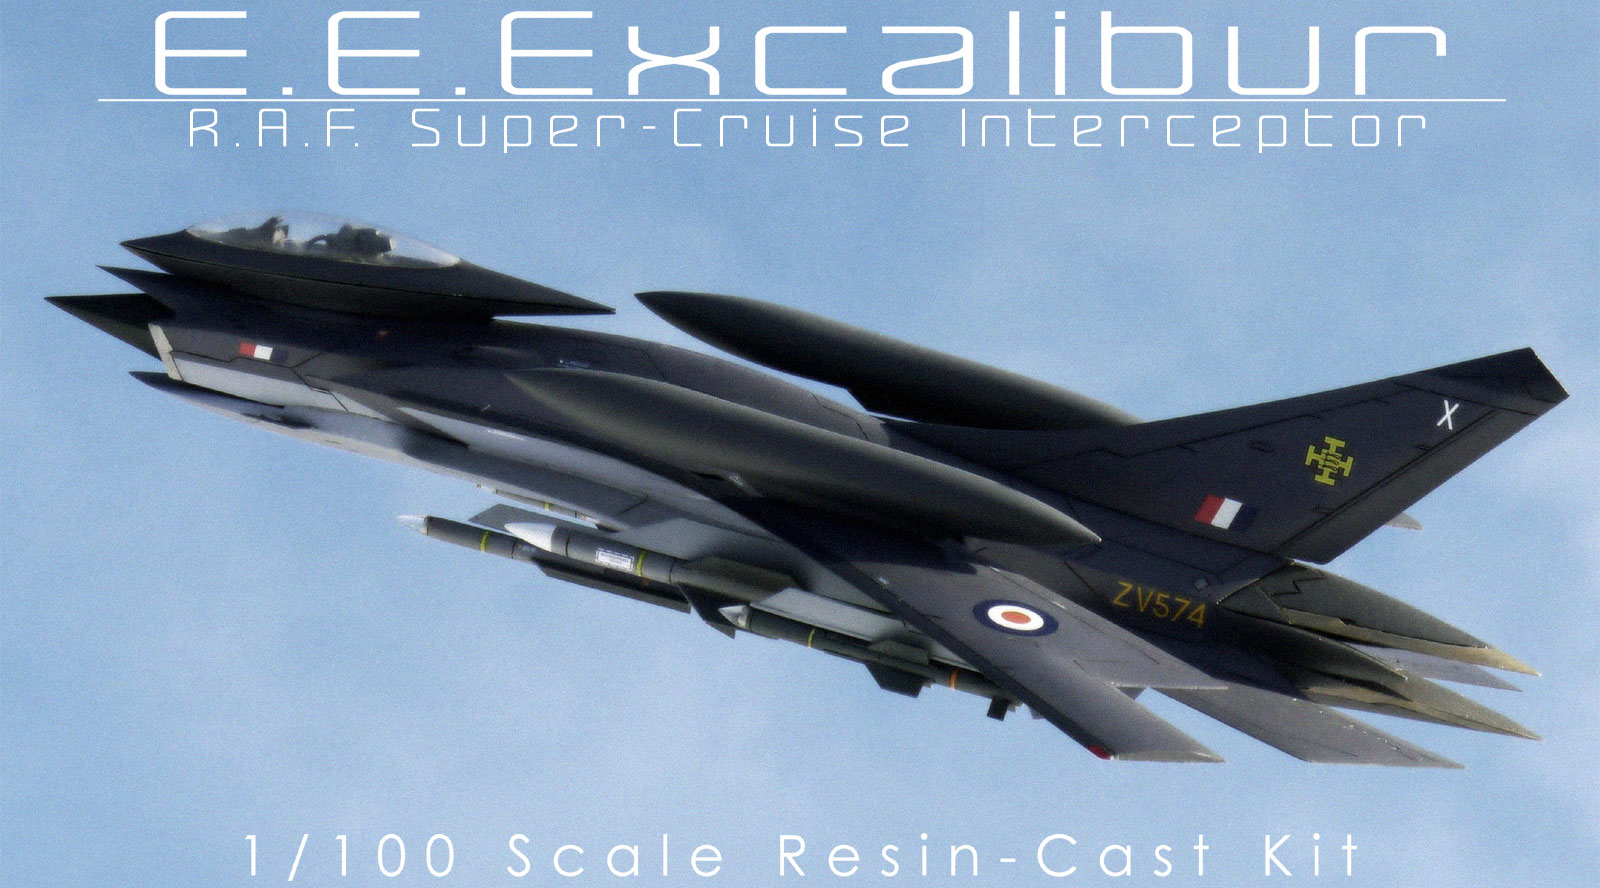 English-Electric Excalibur